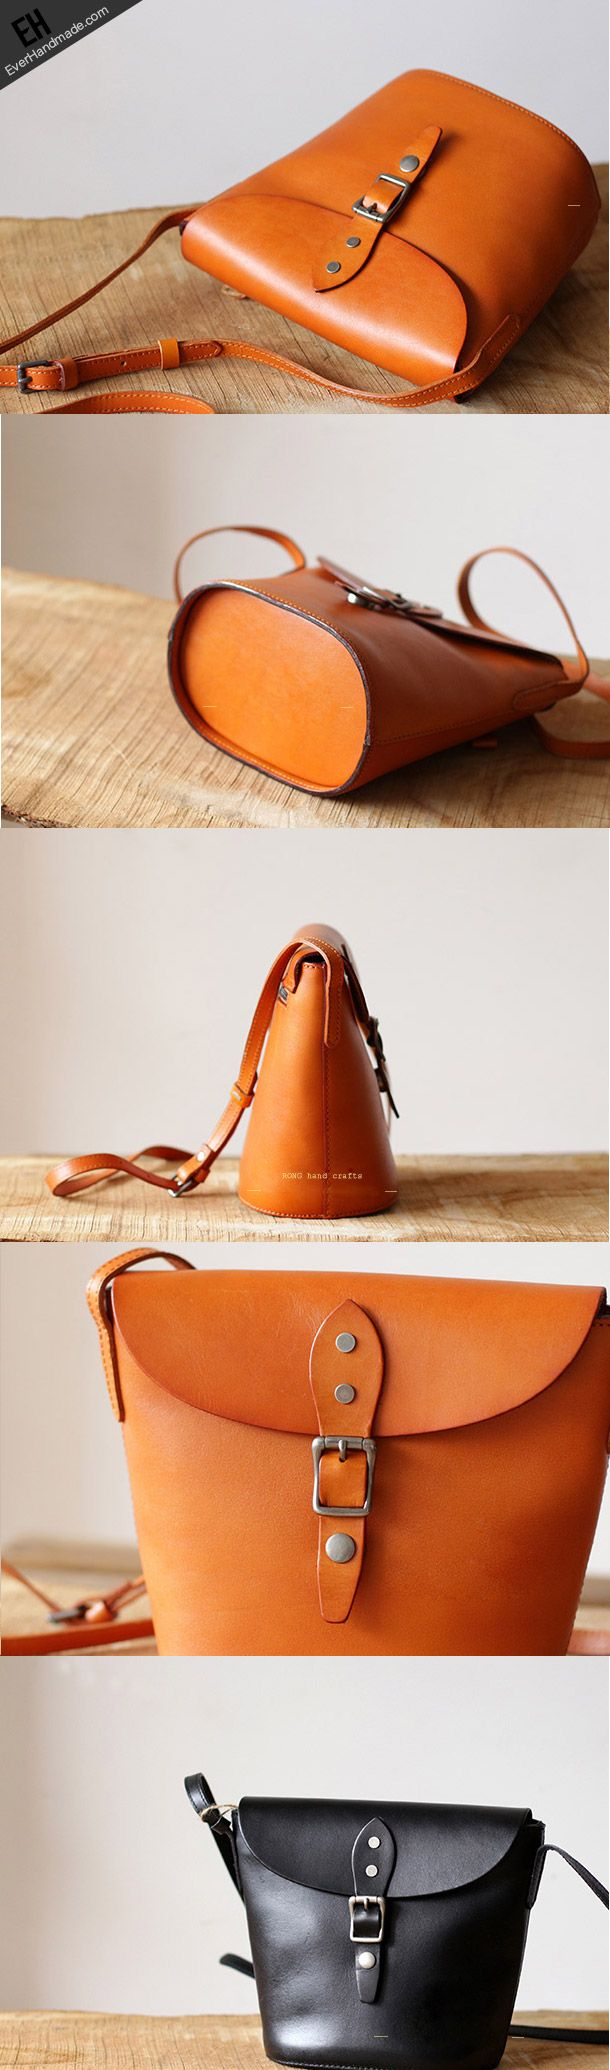 Handmade Leather bag for women leather shoulder bag crossbody